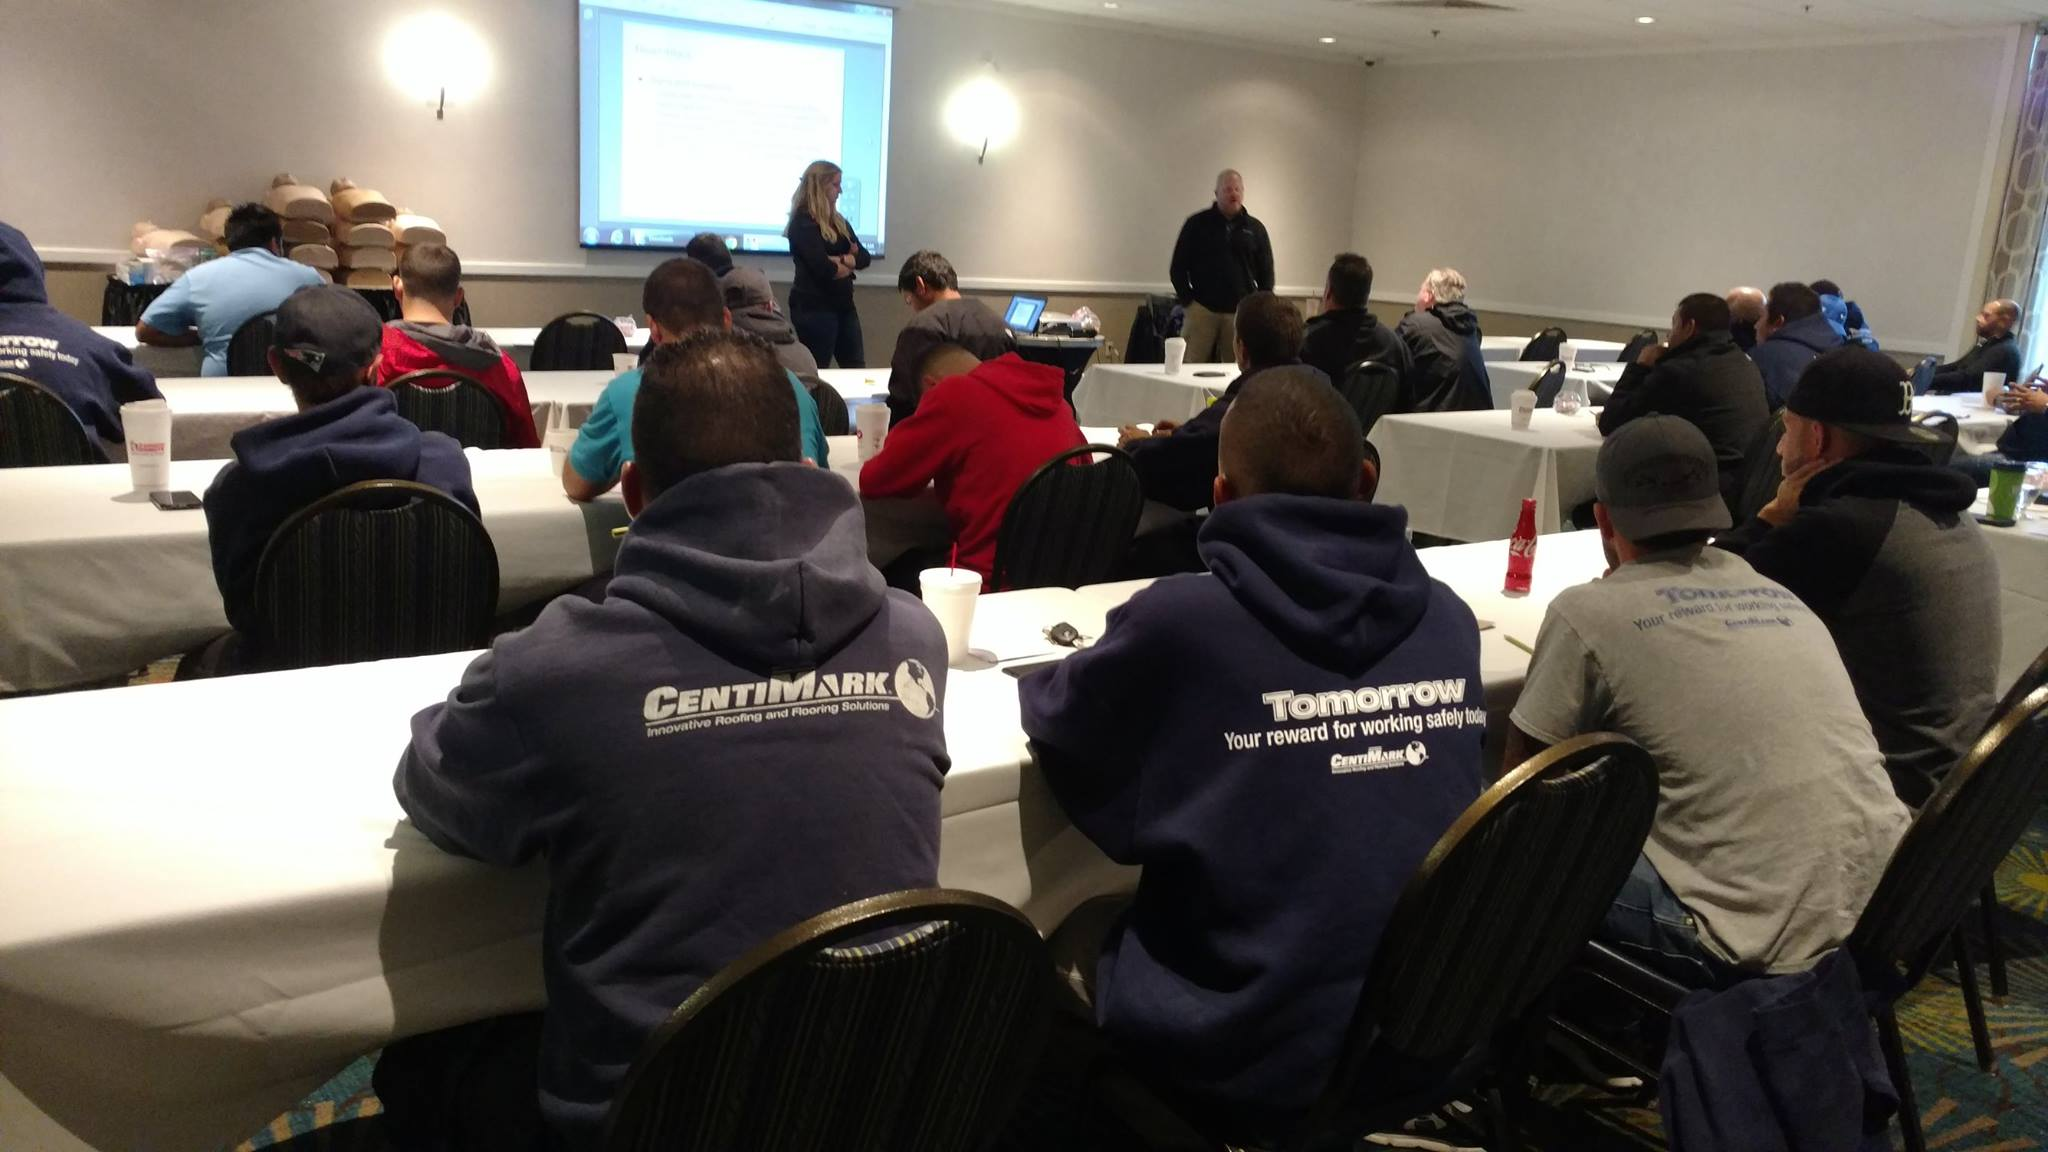 CentiMark staff speak to frontline workers in a training session